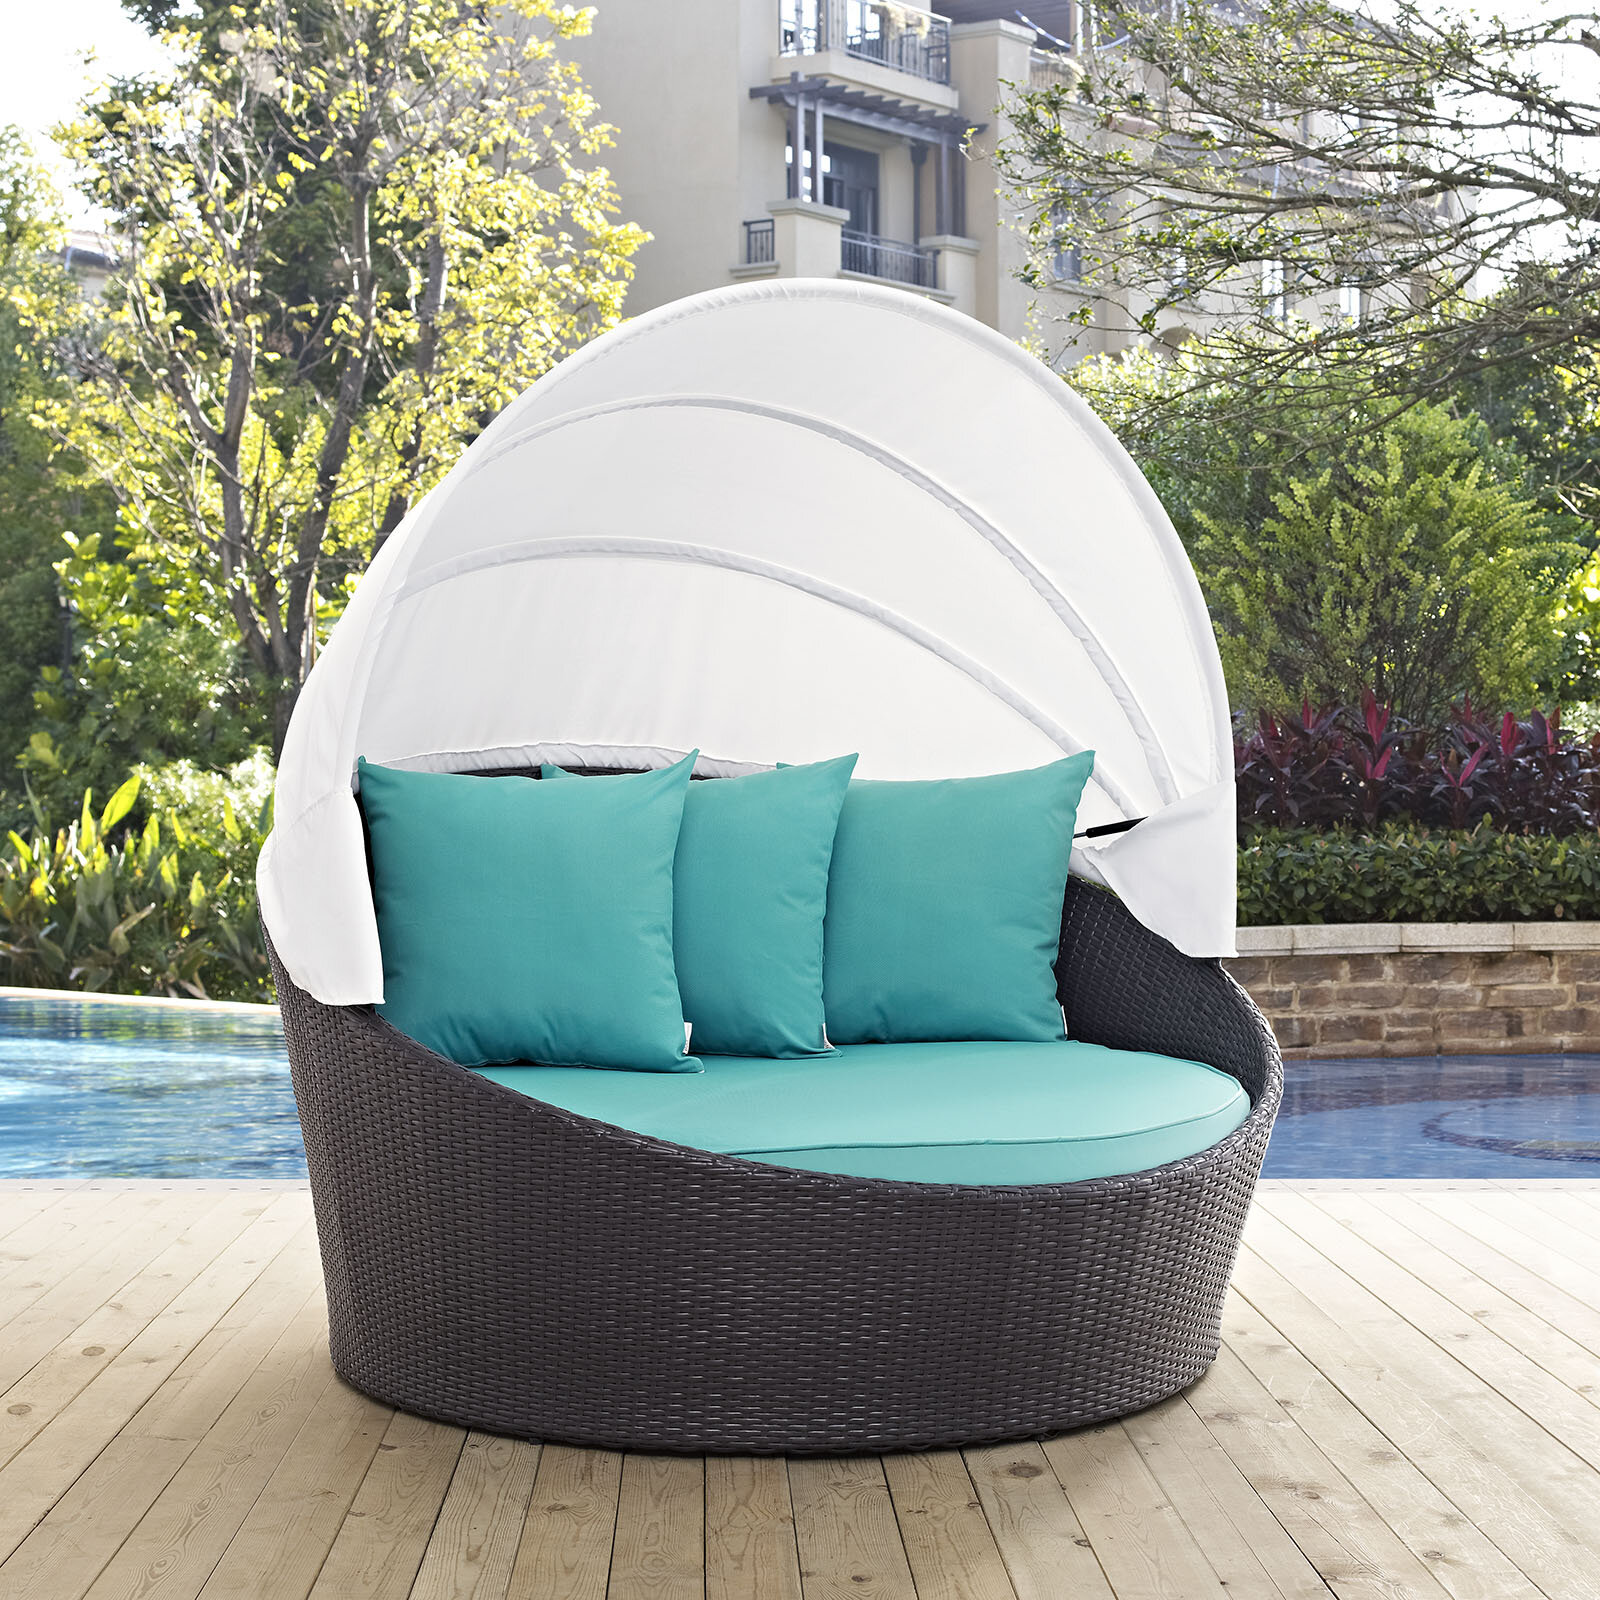 : outdoor loveseat with canopy - memphite.com